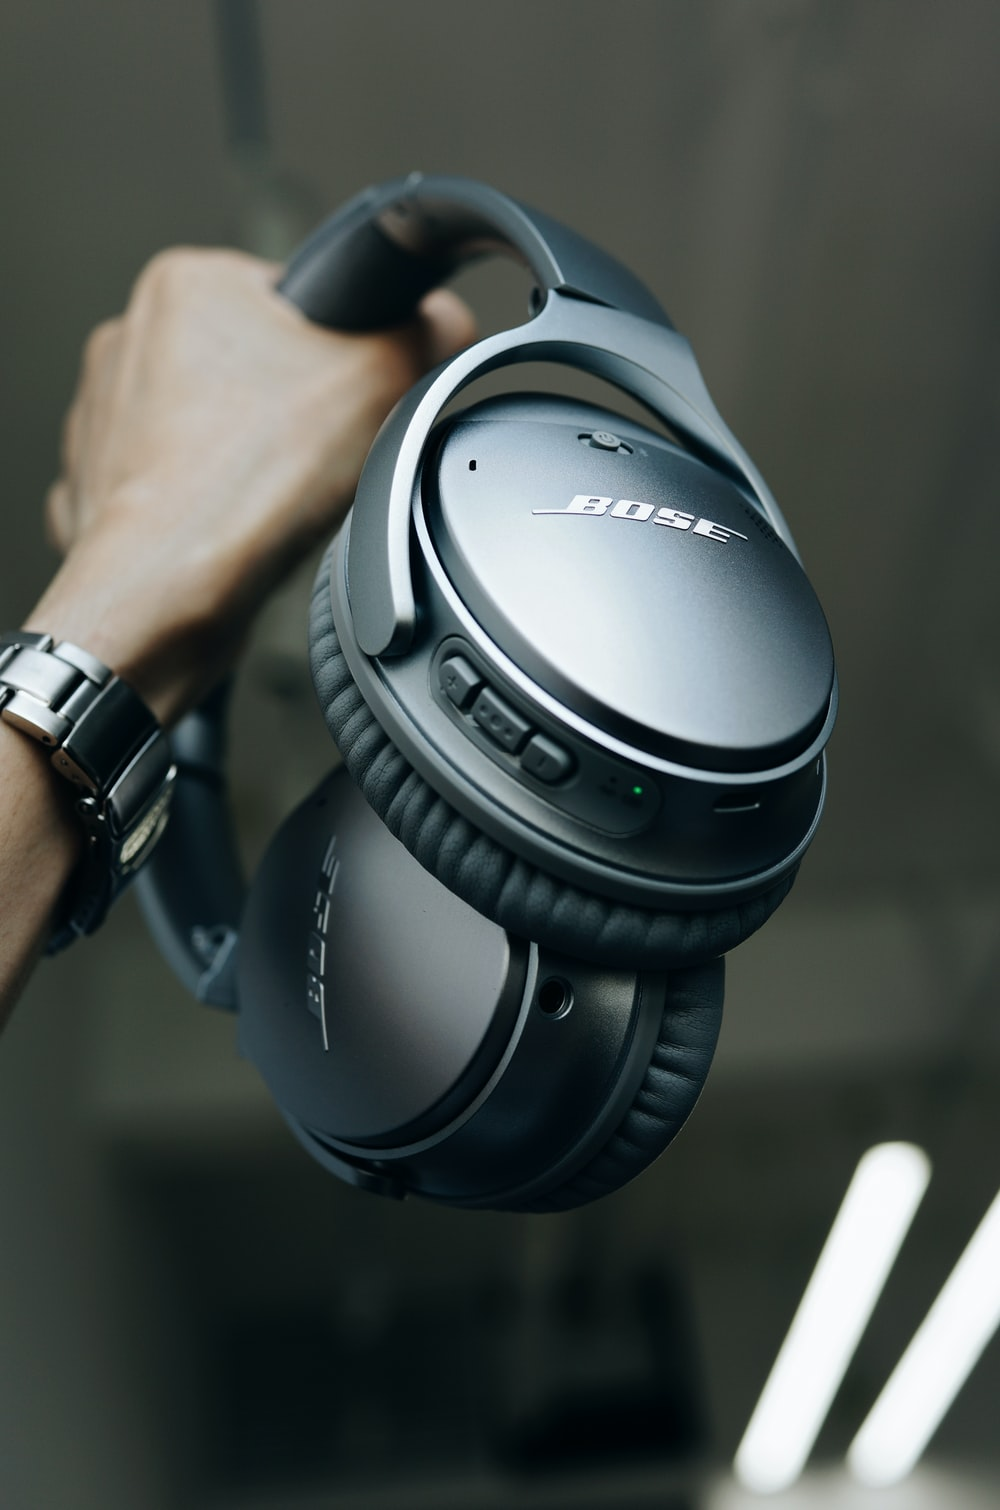 black Bose cordless headphones